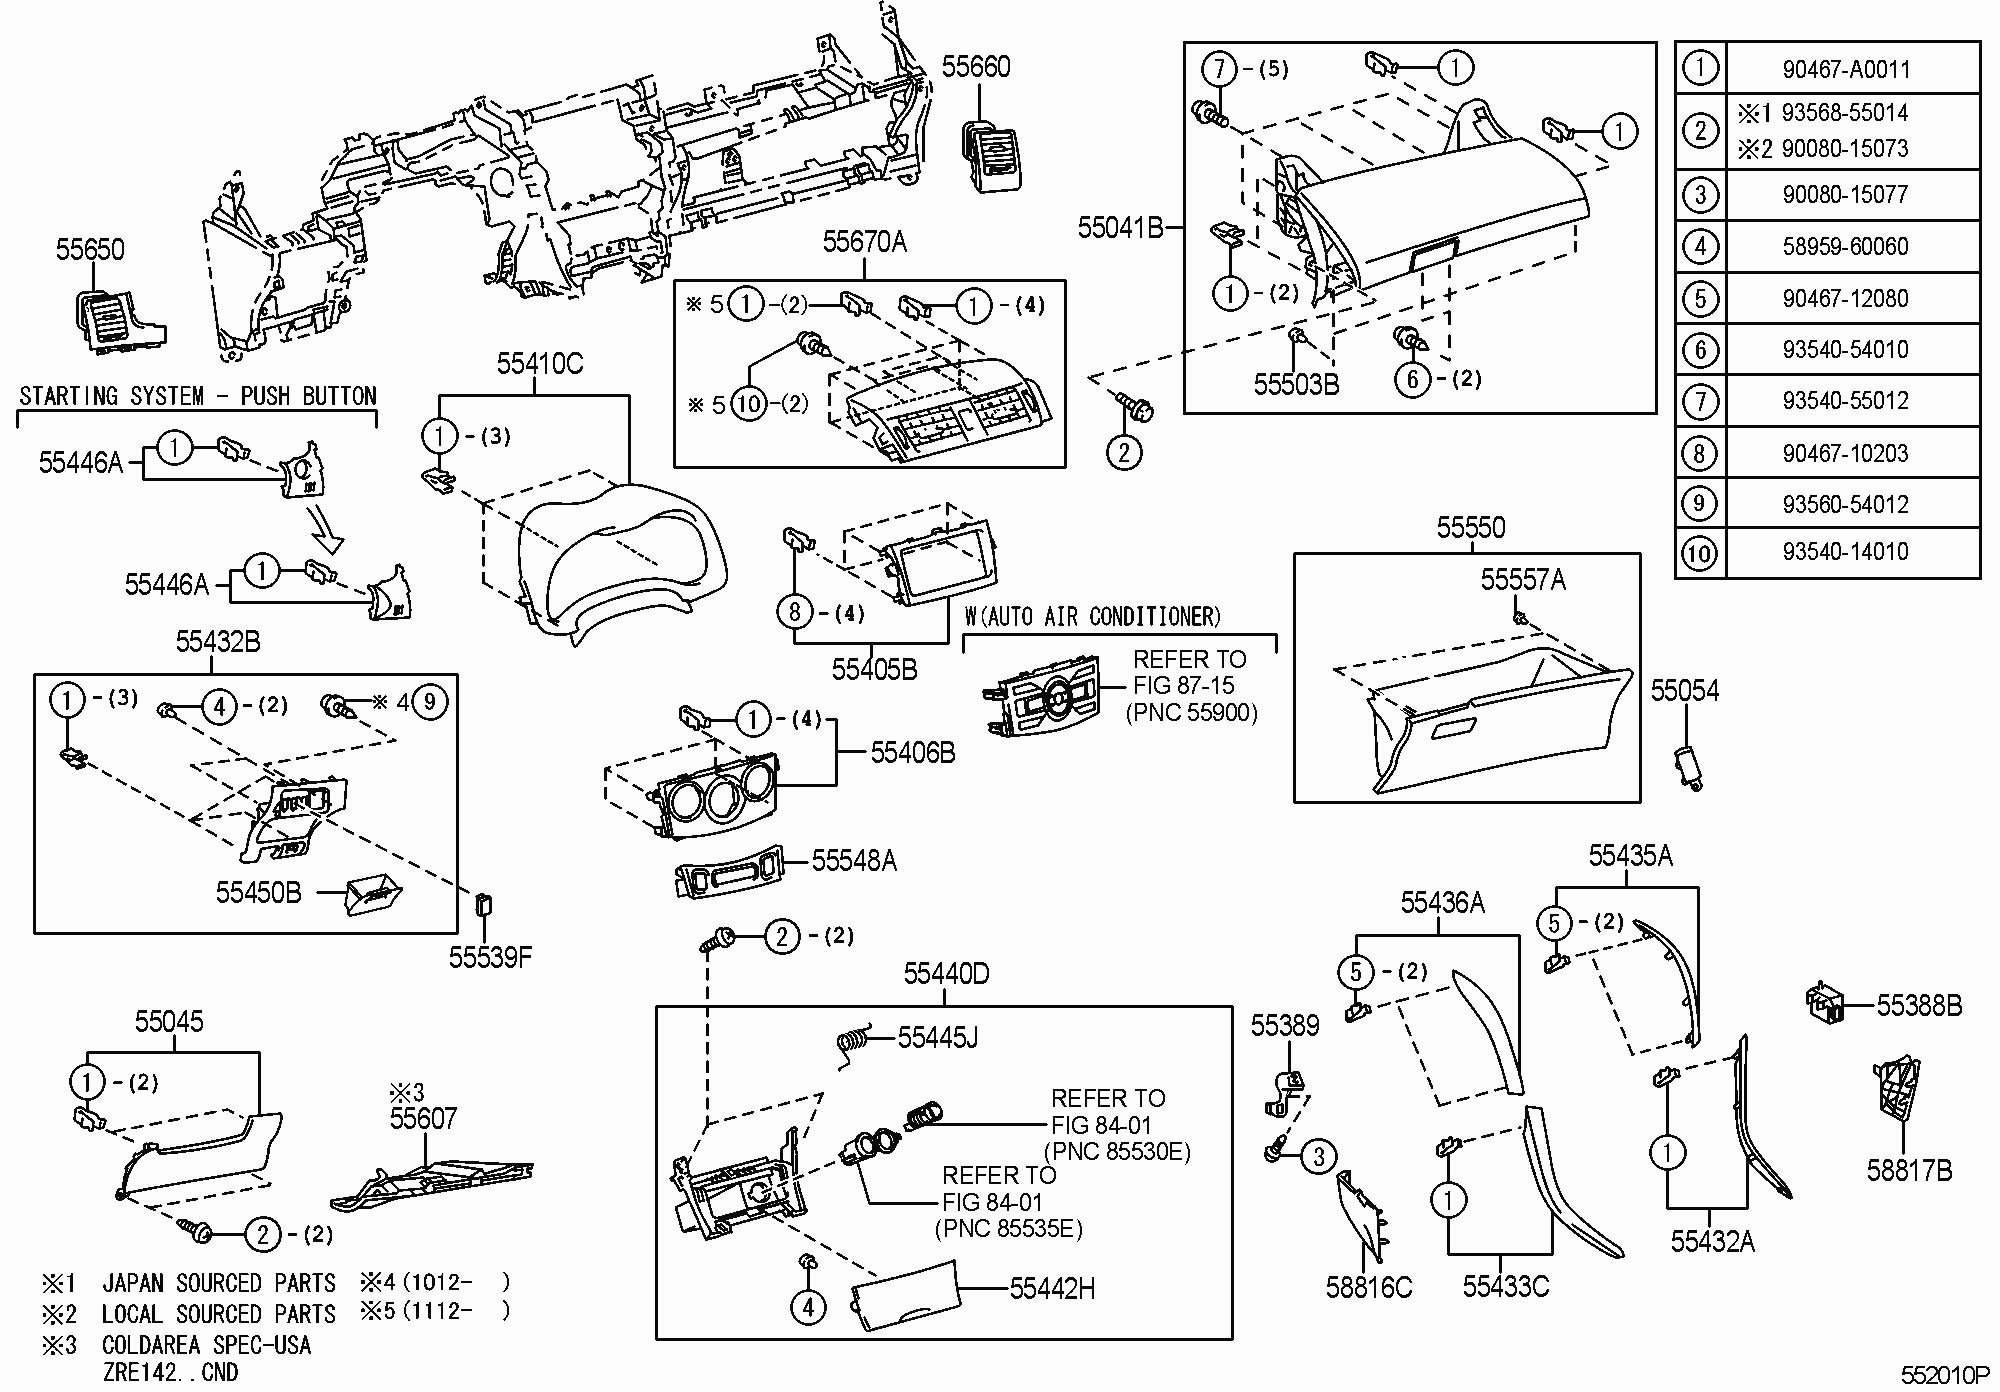 2004 Toyota Sequoia Parts Diagram 2007 Mirror Power Wiring Front End Body House Symbols